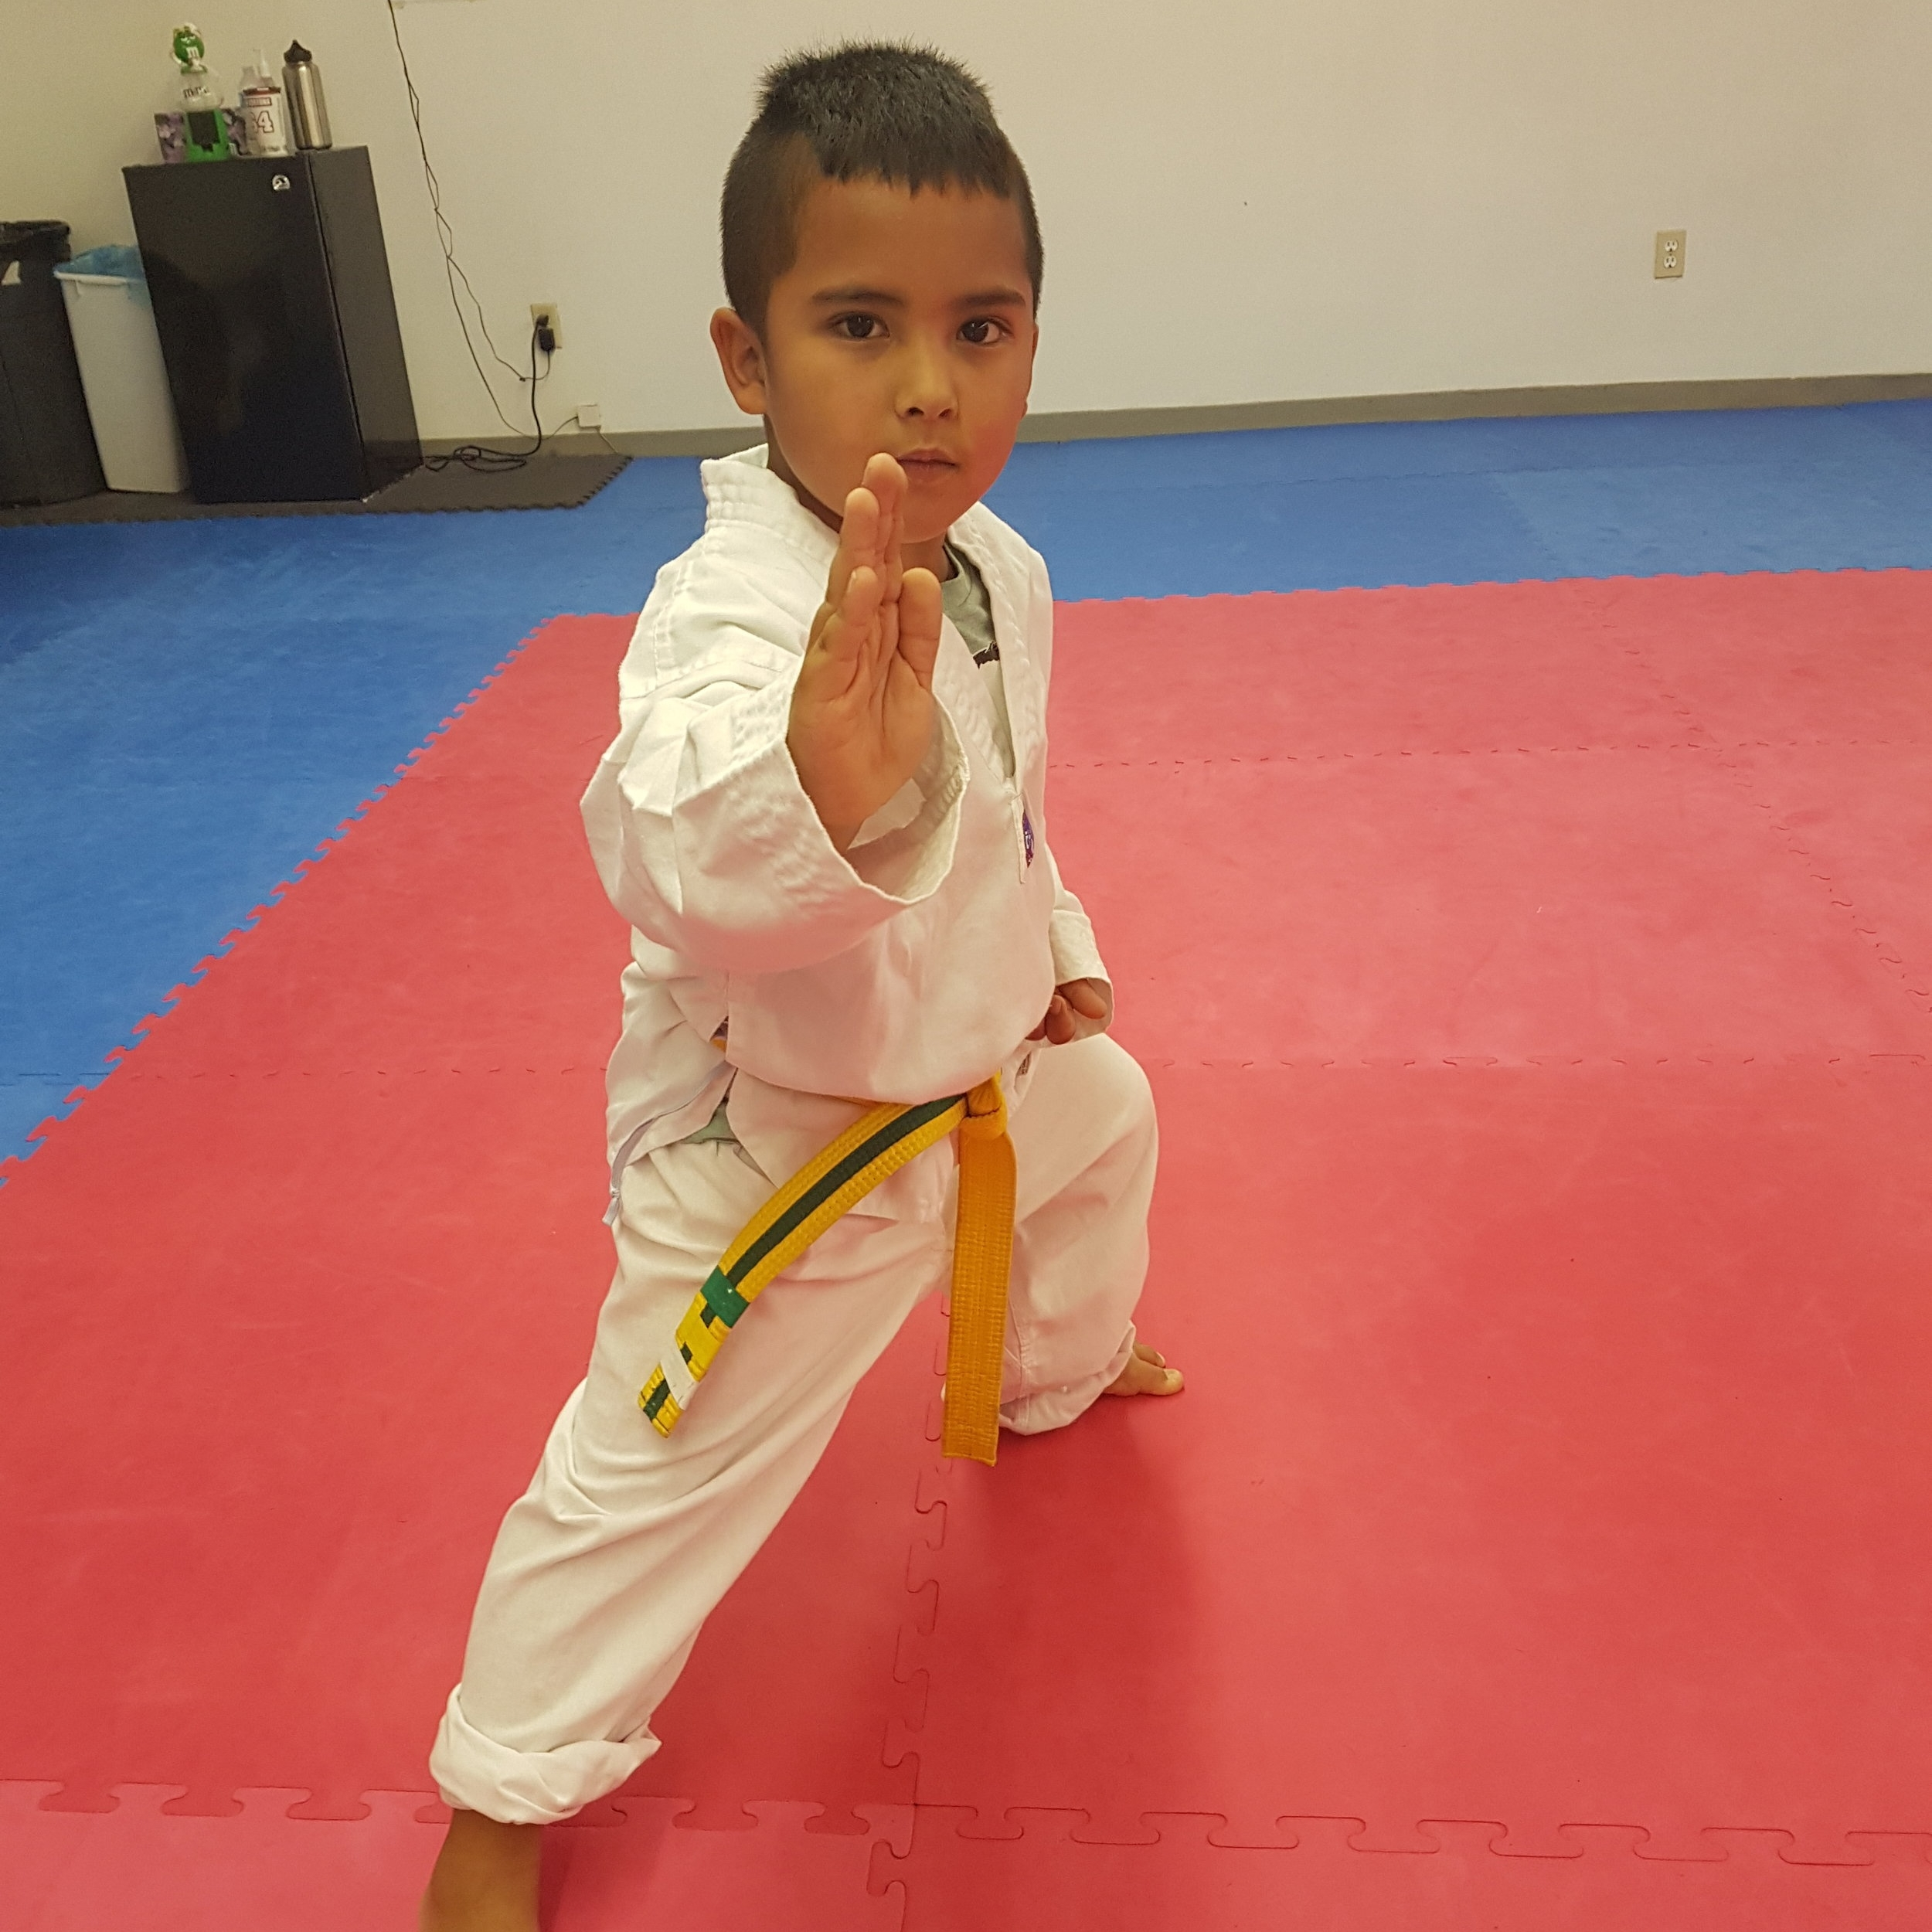 Ages 4-7 All Levels - Mon/Wed 4:30-5:00 The emphasis for the 4 - 7 year old age group is on introducing martial arts as a fun activity. This will lay the groundwork for an ongoing interest in being physically active. We also develop the focus necessary to do activities in a structured environment. Our lessons focus on:Motor skills (ABCs: agility, balance, and coordination)Listening skills and following simple rulesDeveloping social skills for positive interactions with peers